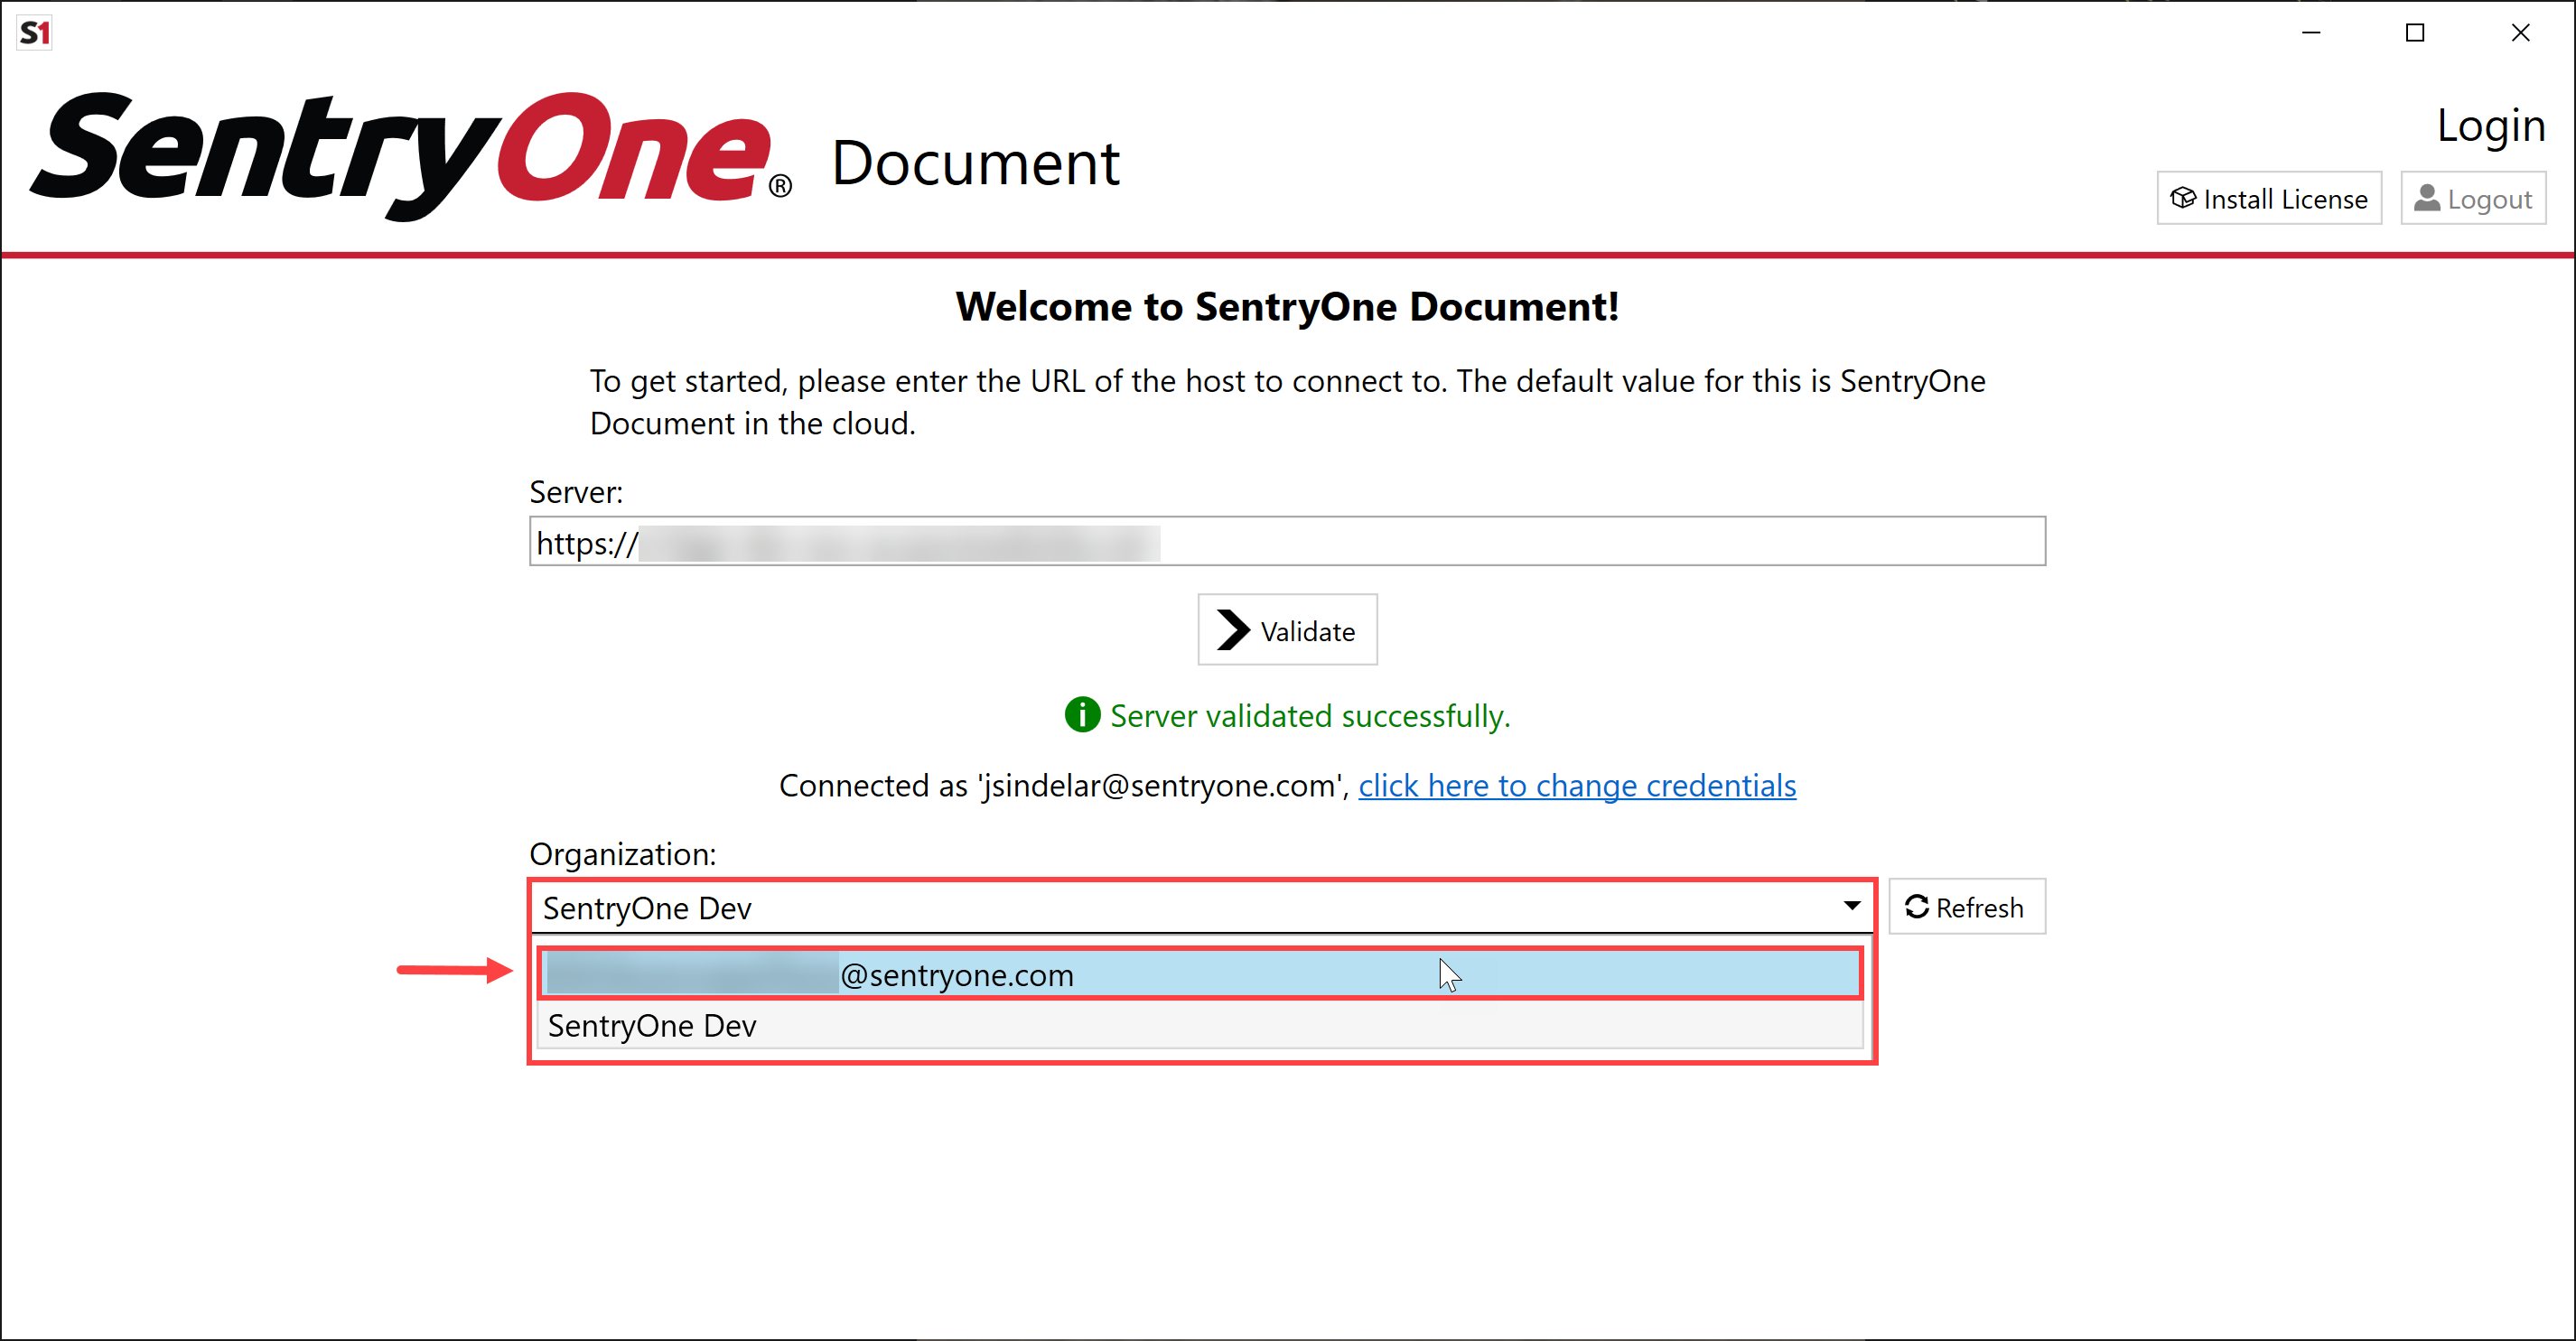 SentryOne Document Solution Configuration Tool select Organization